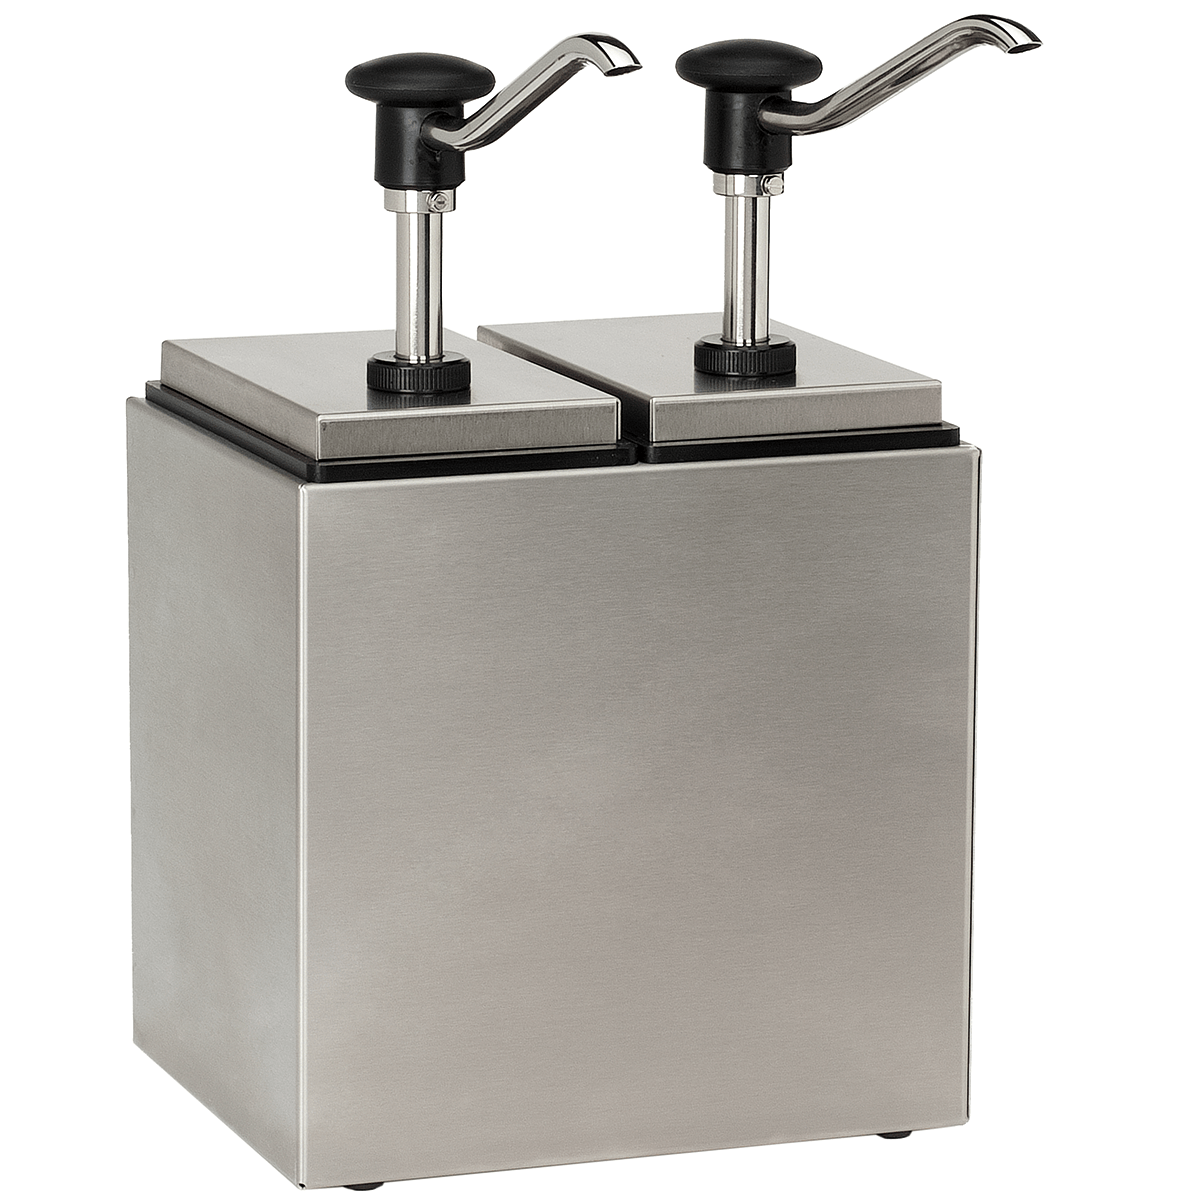 Sauce Bar Push Button Dispensers (2,5 L / 1-6 Piece Design)